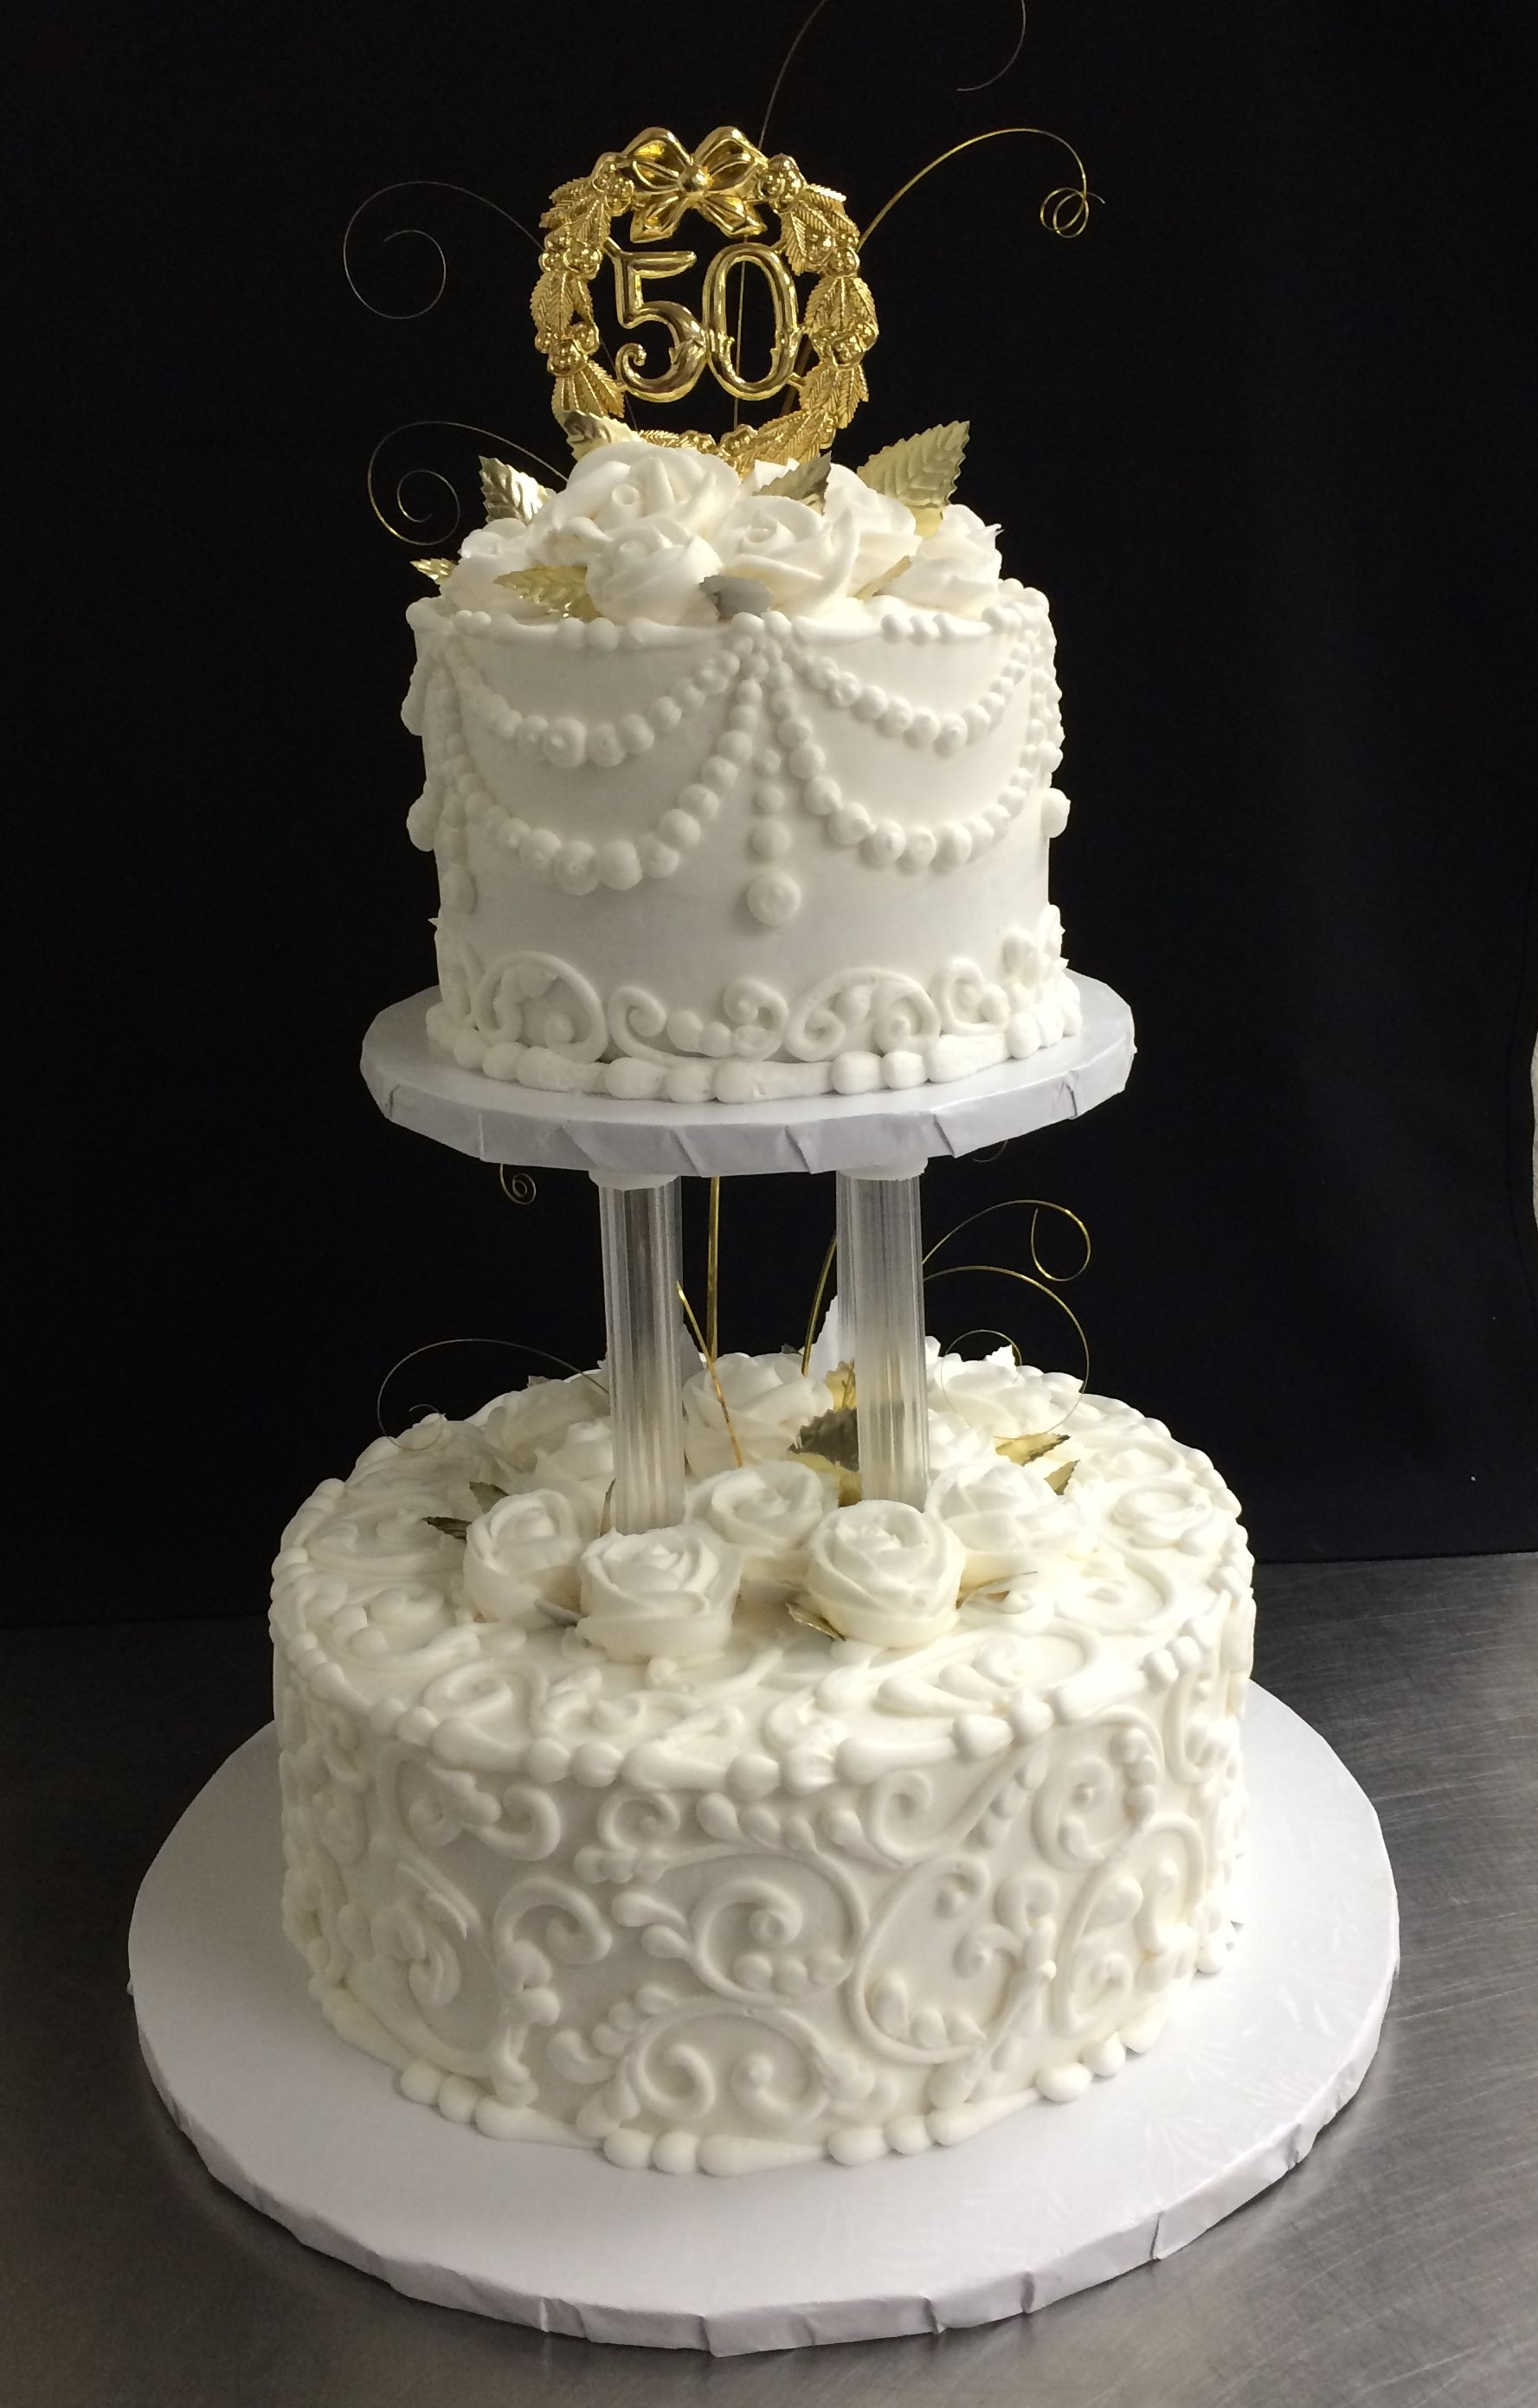 50th Anniversary Cake By Stephanie Dillon Ls1 Hy Vee